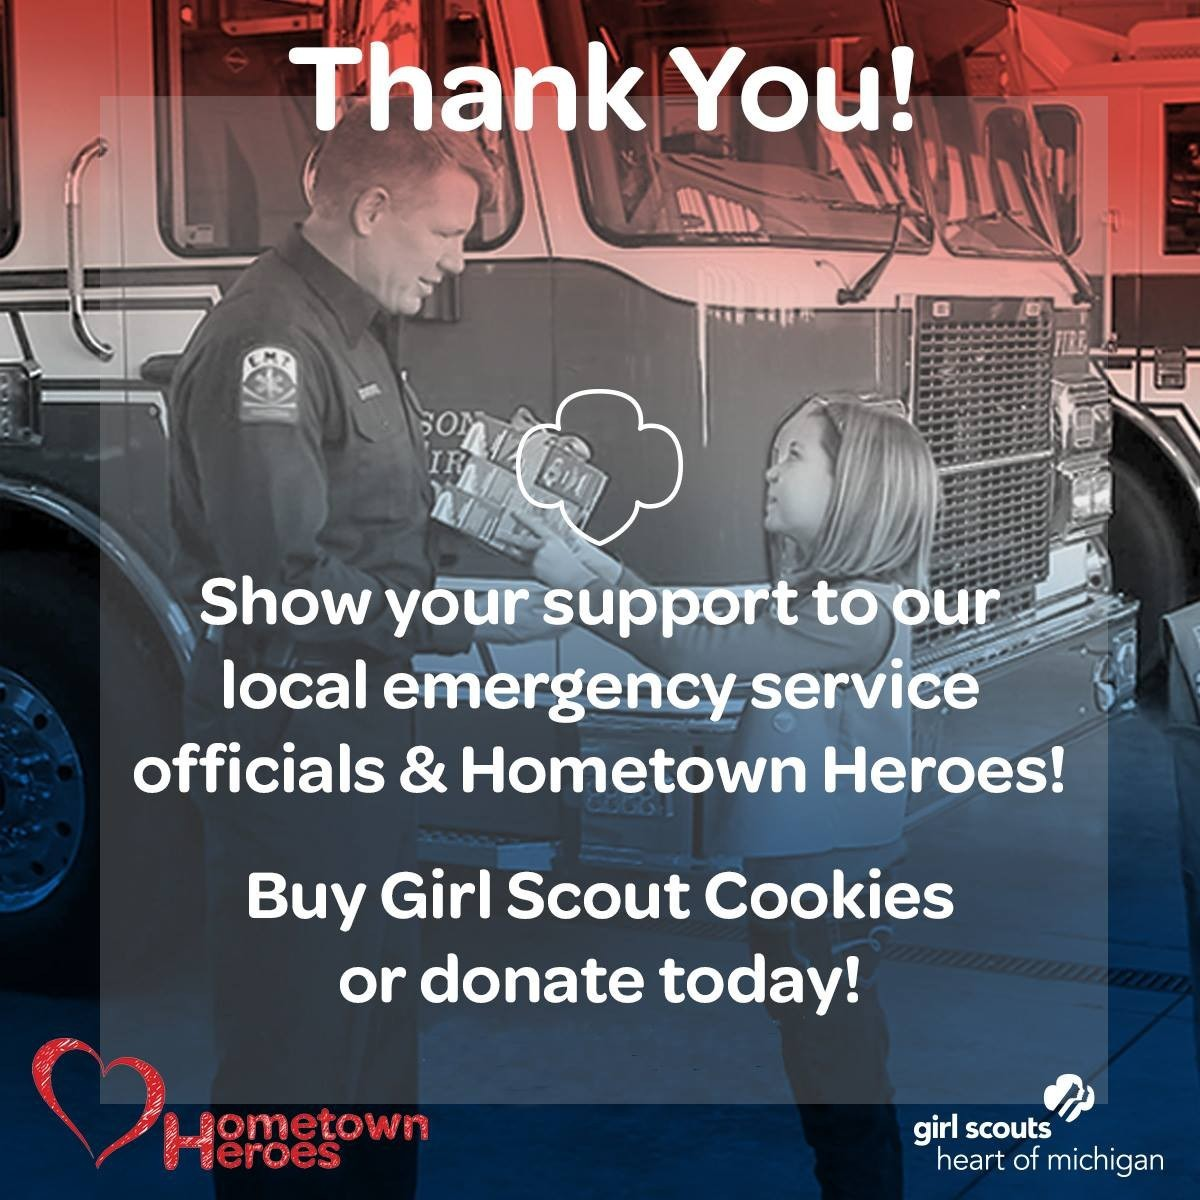 Thank You! Hometown Heroes